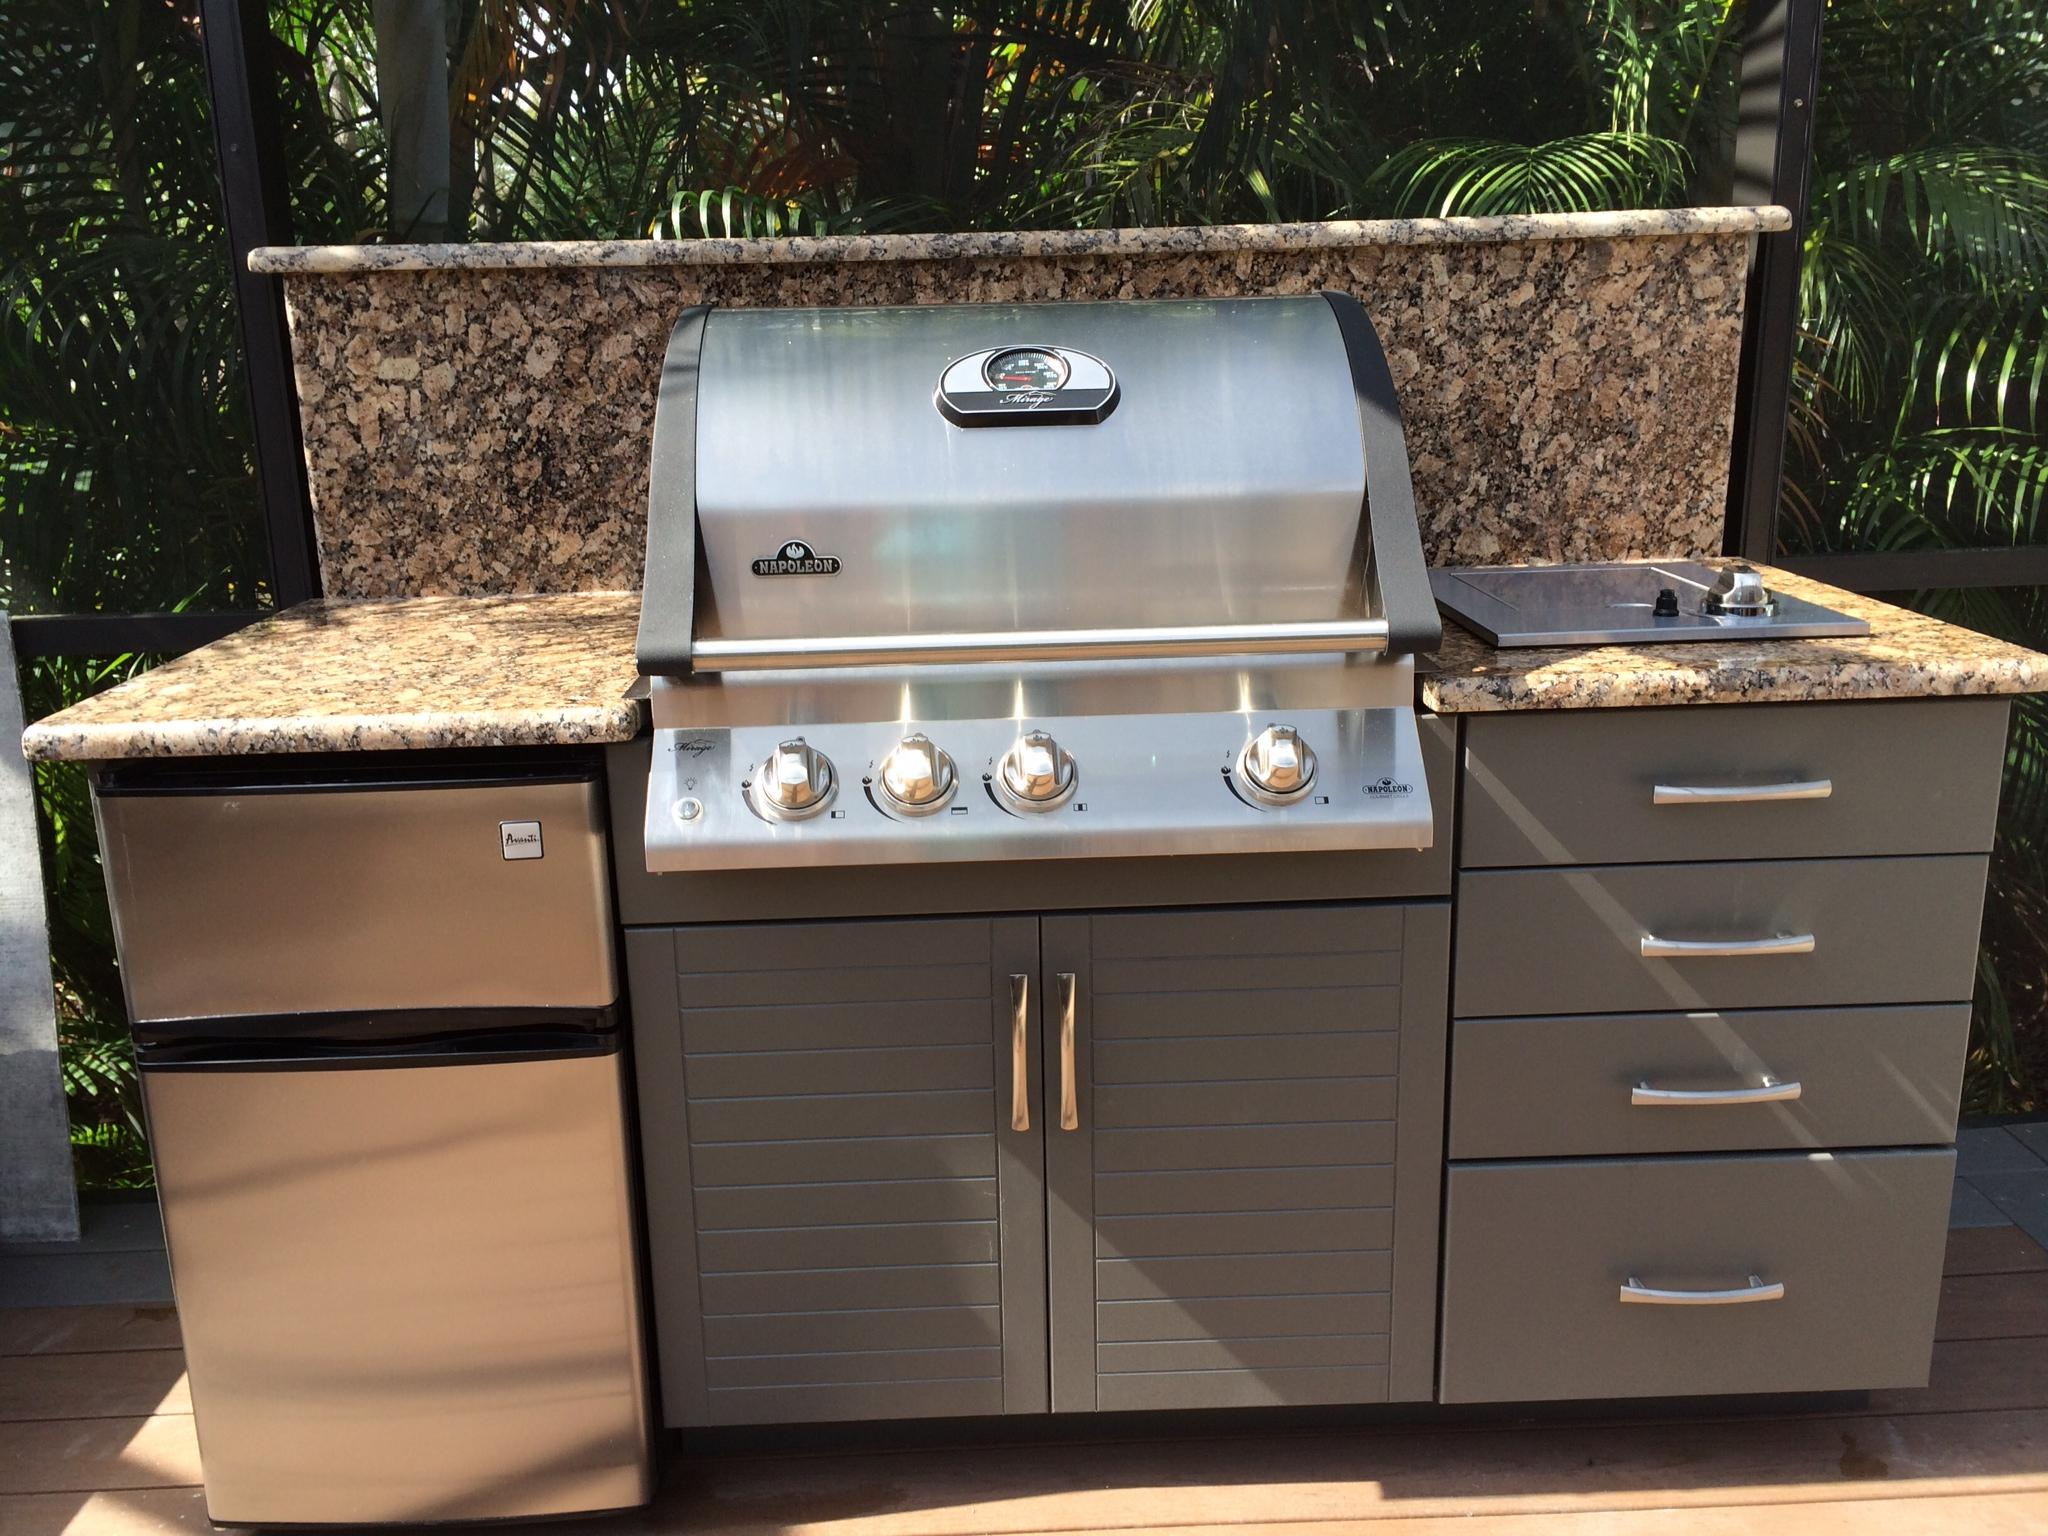 Outdoor Cabinets Direct image 20